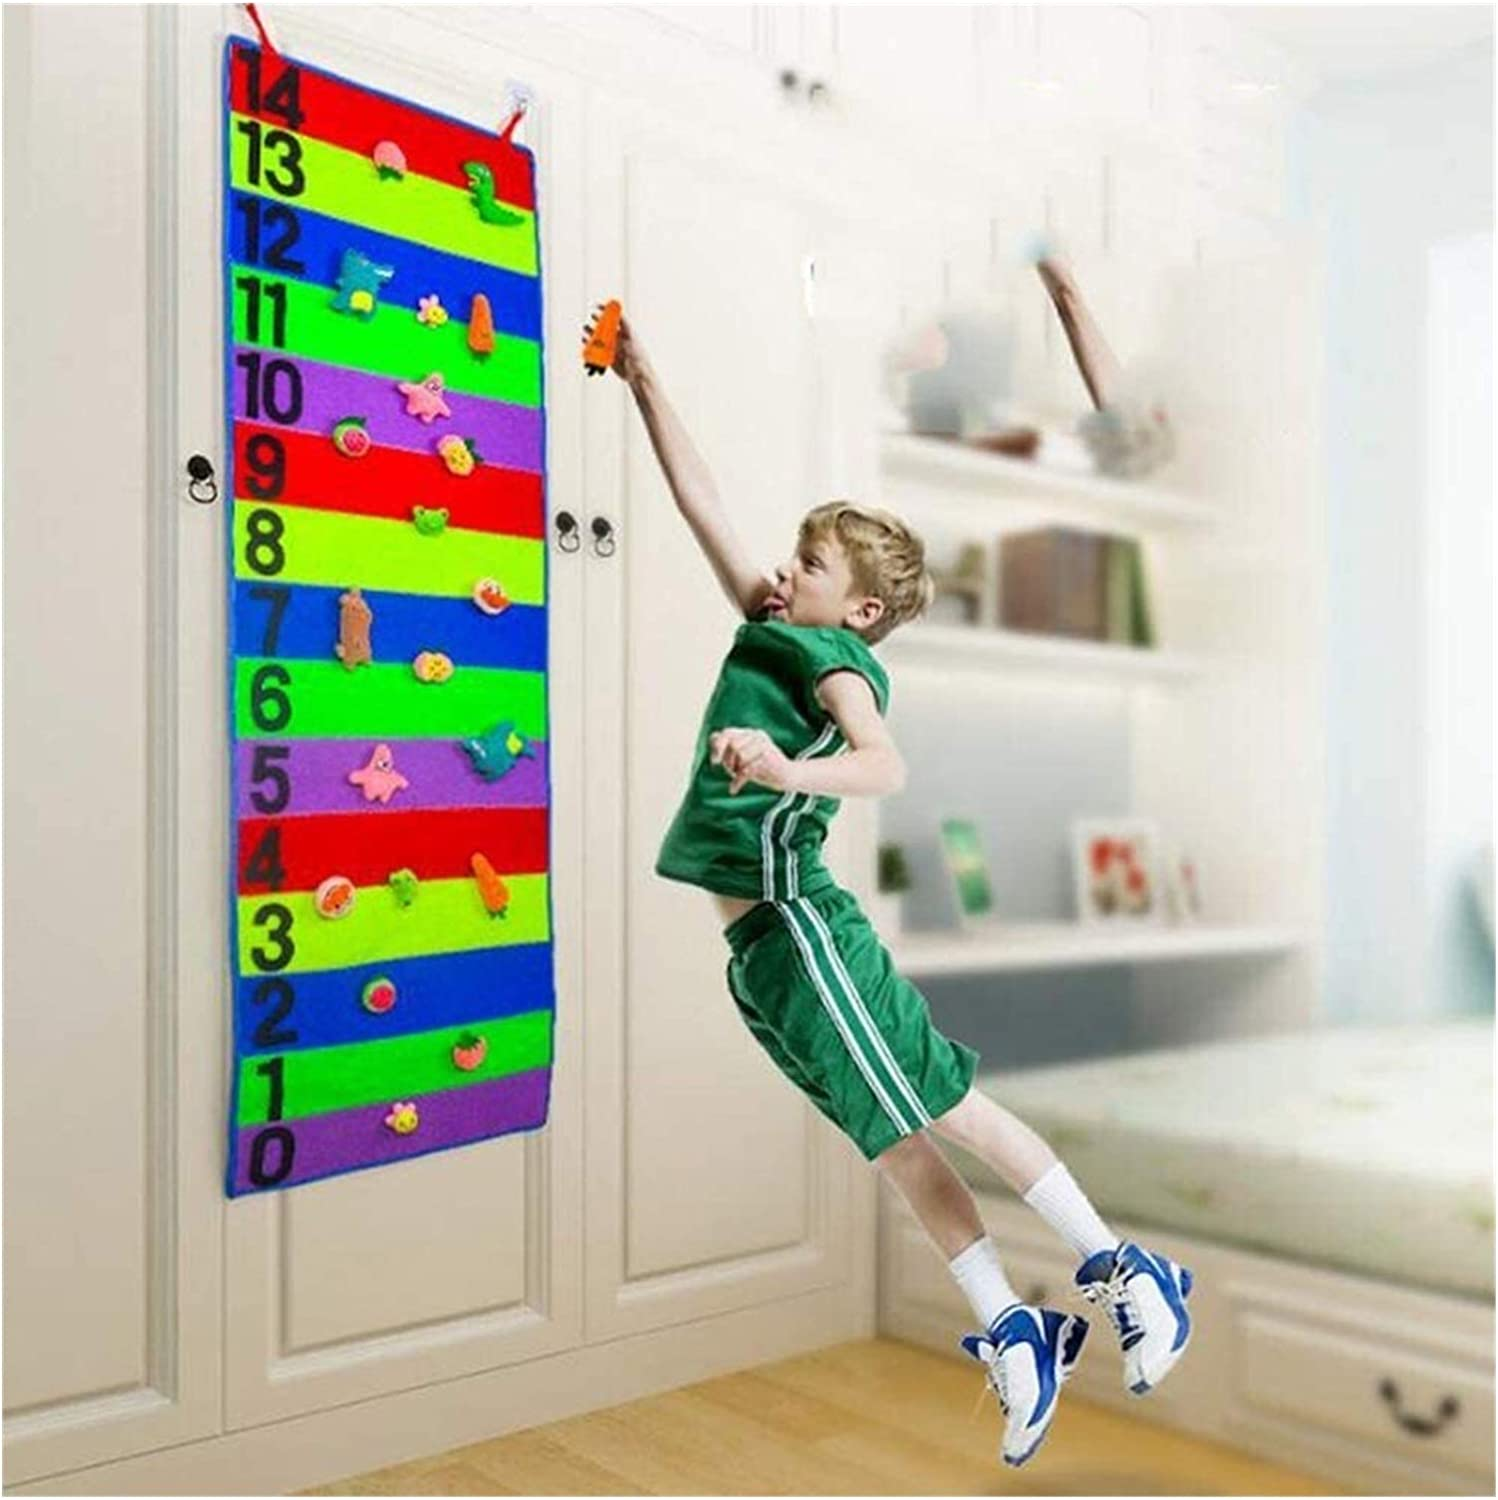 shop Children's High Jump Special sale item Exercise Equipment Soft Material Plush Ind